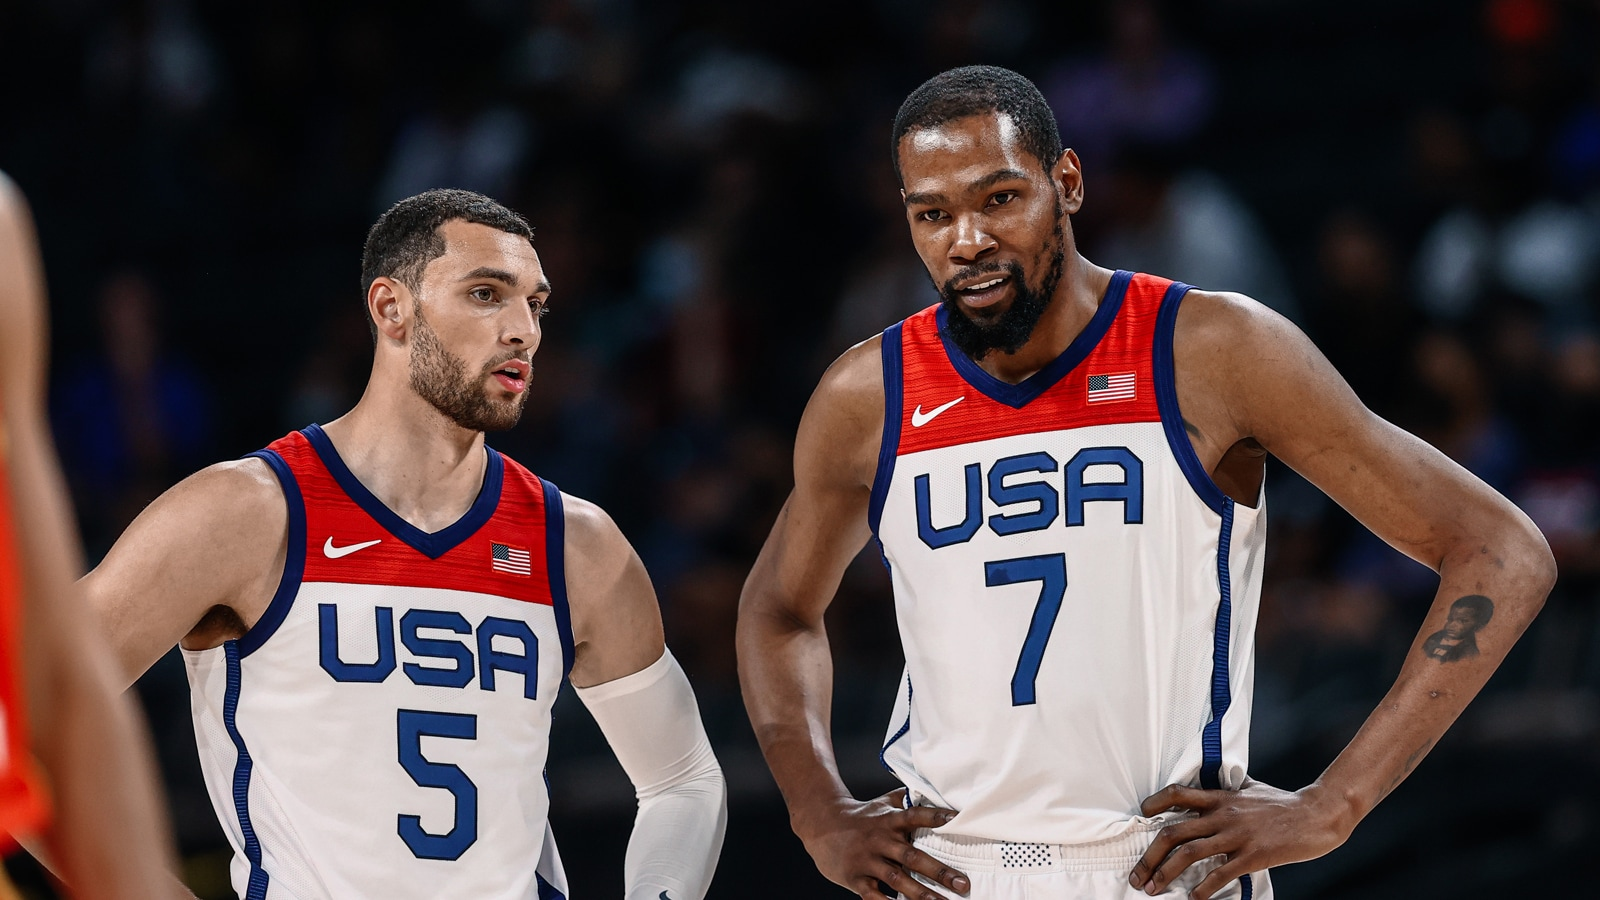 Zach LaVine and Kevin Durant